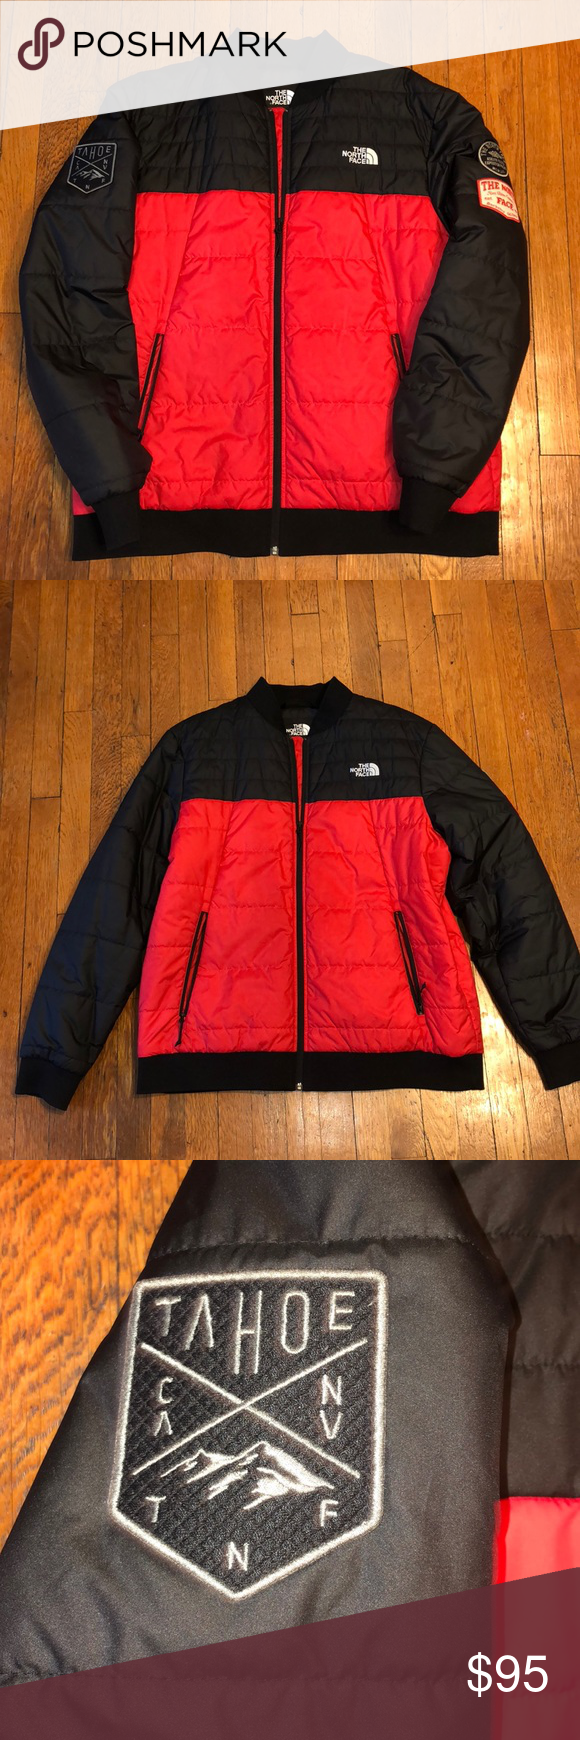 Men S The North Face Bomber Jacket North Face Bomber Jacket Bomber Jacket Jackets [ 1740 x 580 Pixel ]